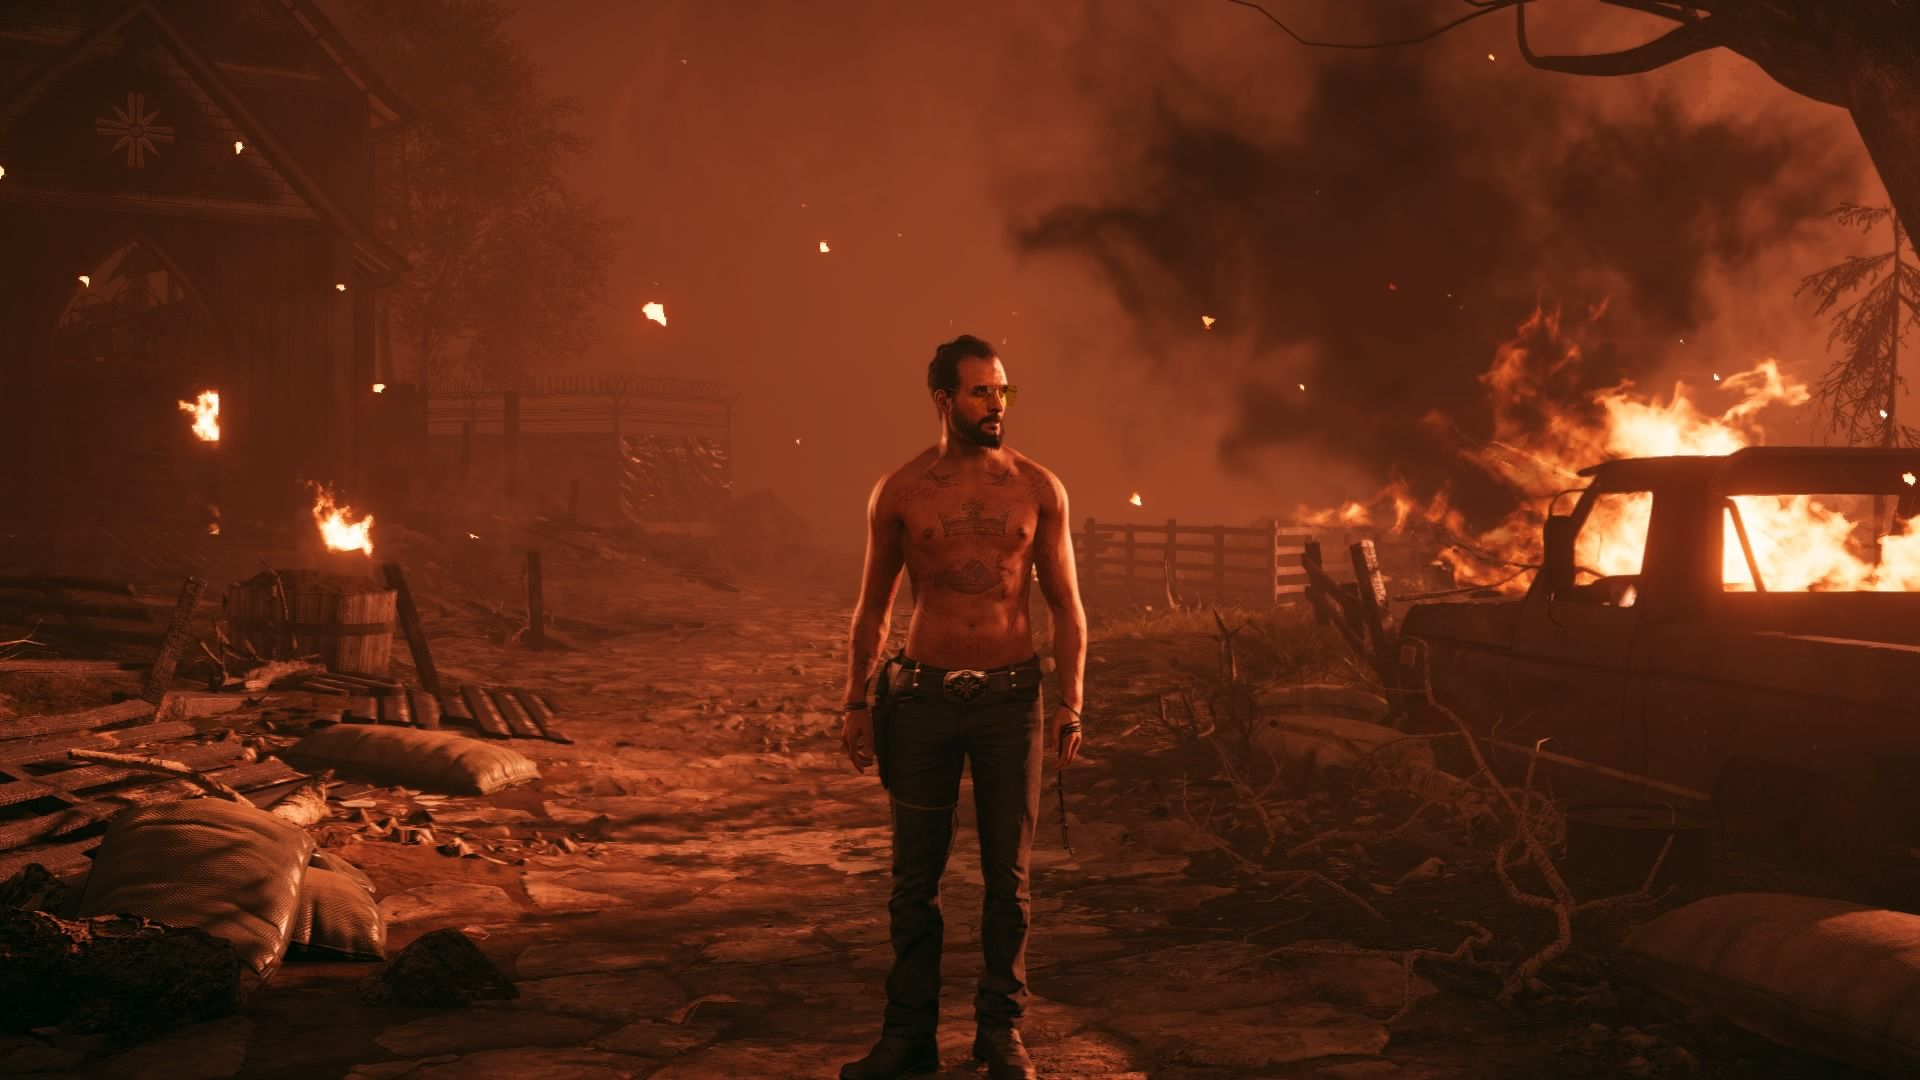 Far Cry 5 The Father Flames Destroy Screenshot Ps4 Wallpaper Far Cry 5 Crying Father